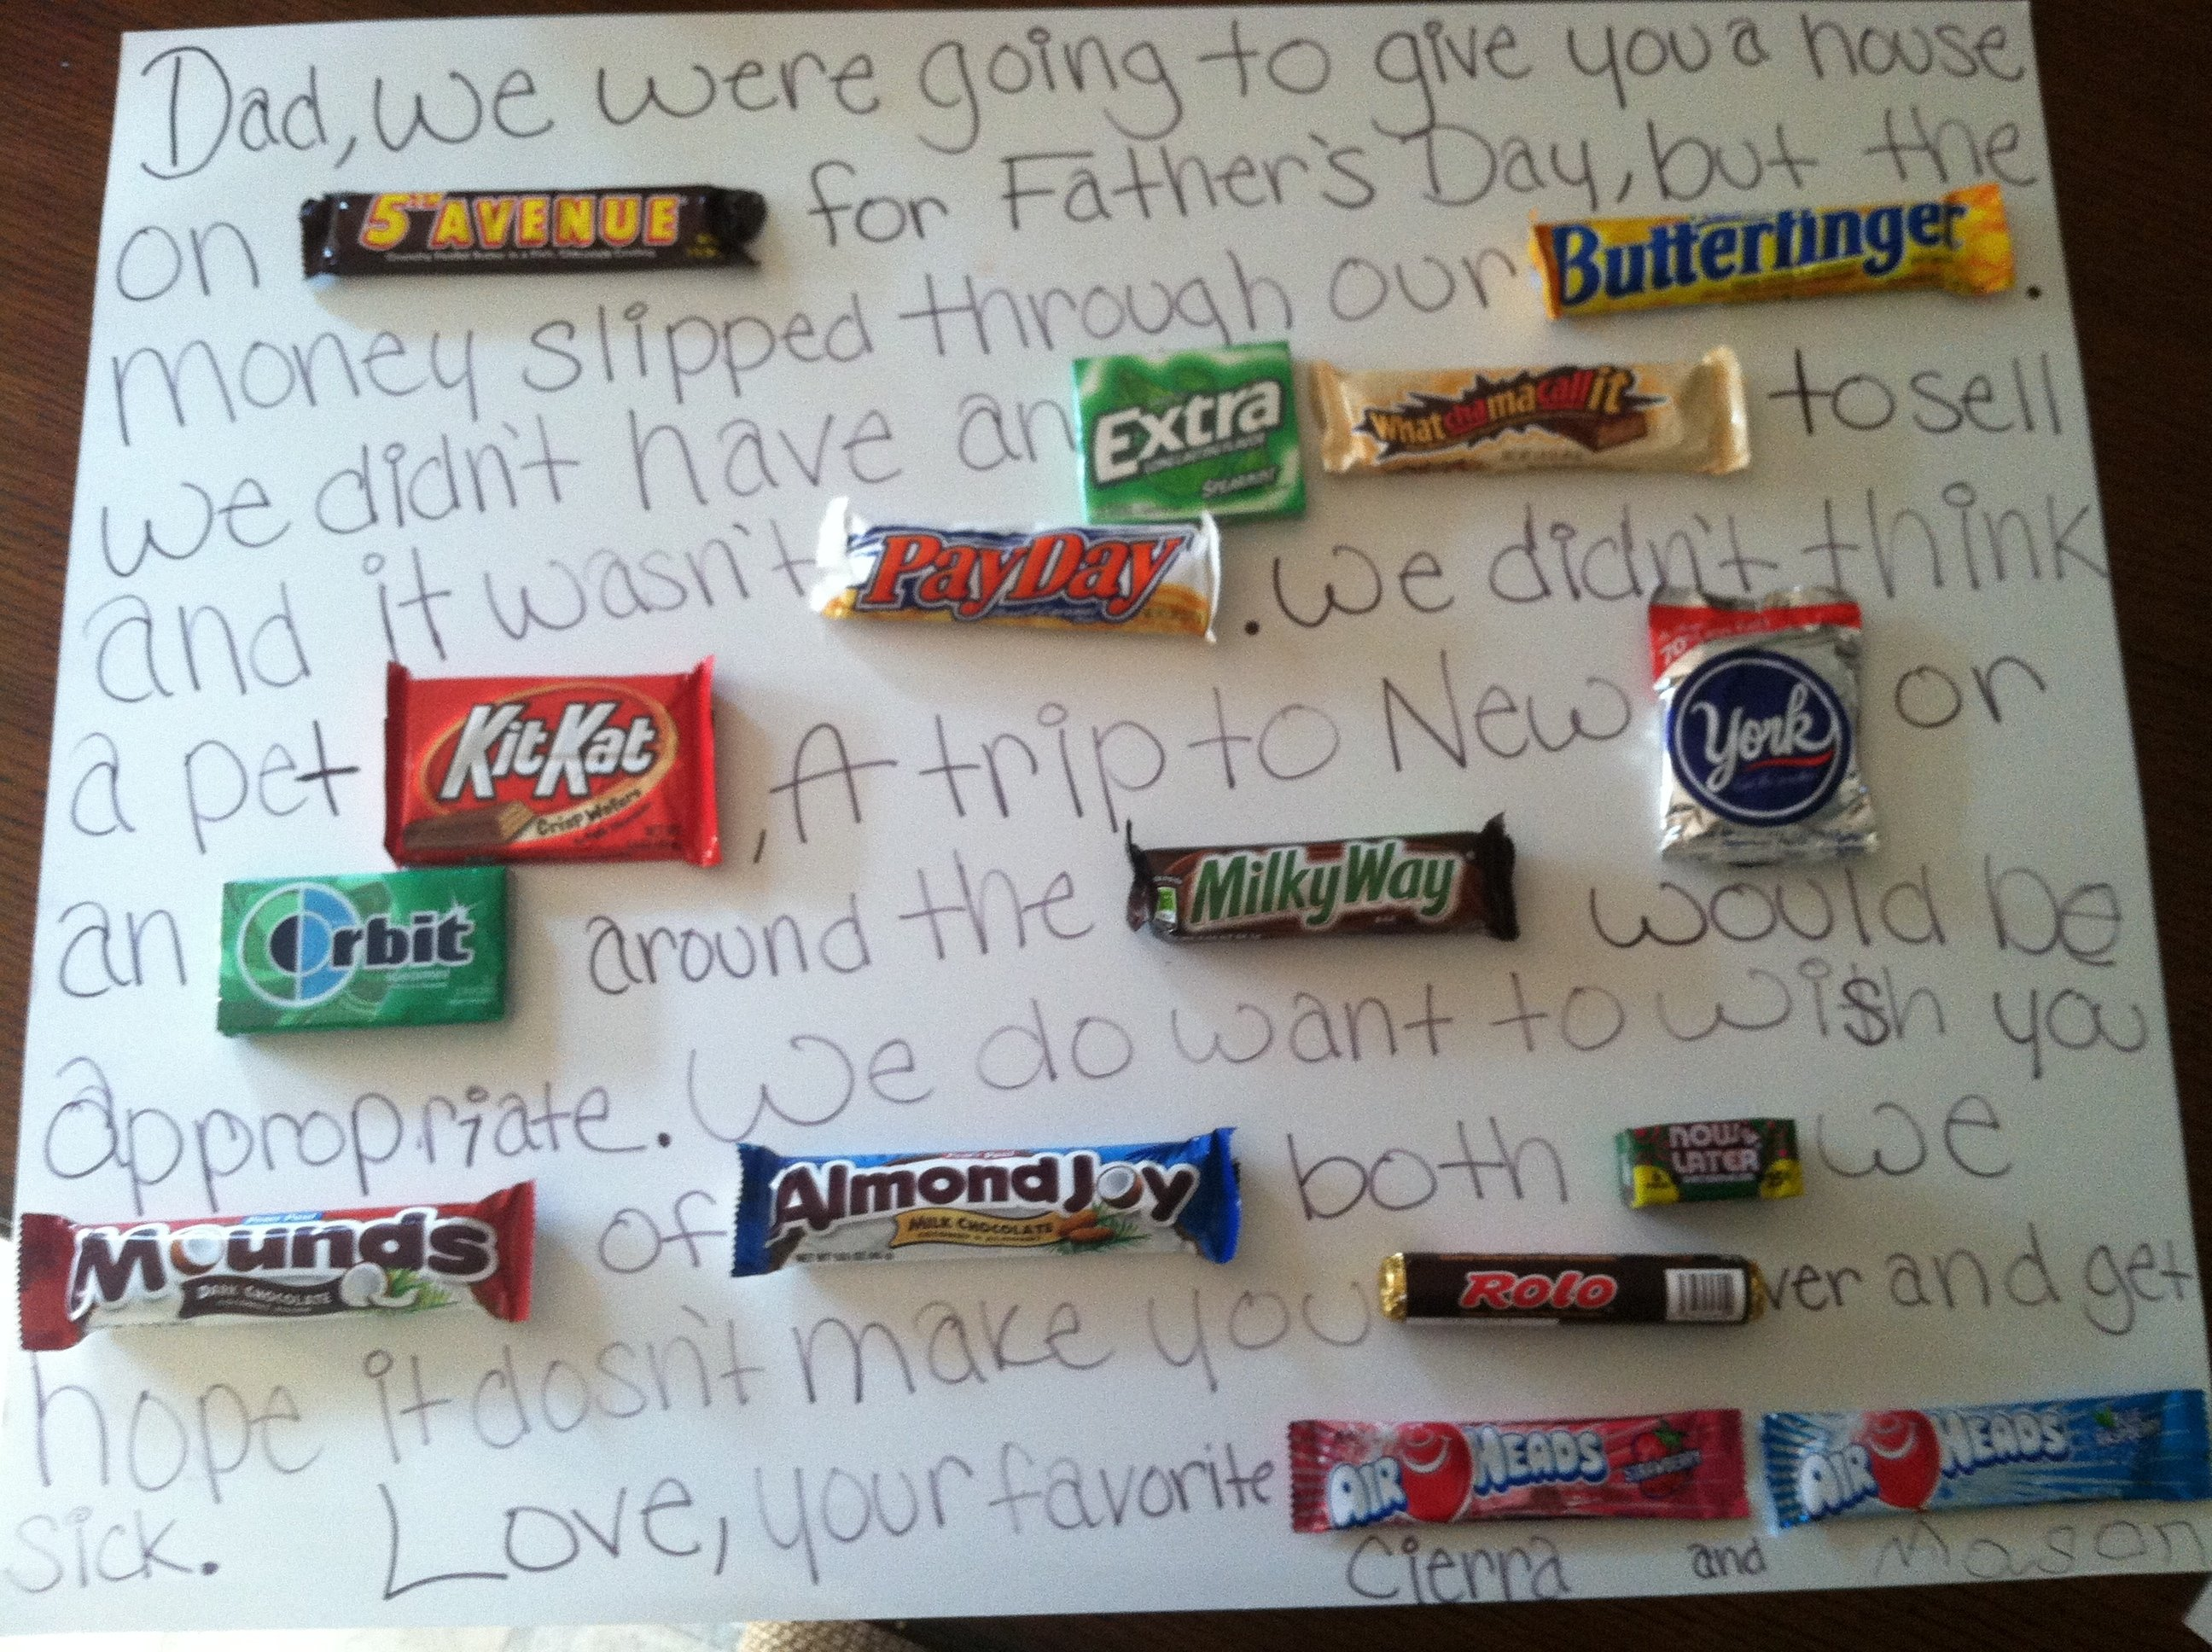 10 Gorgeous Christmas Gift Idea For Dad wemadeitgjcm gift for dad made it and ate it pinterest dads 1 2020